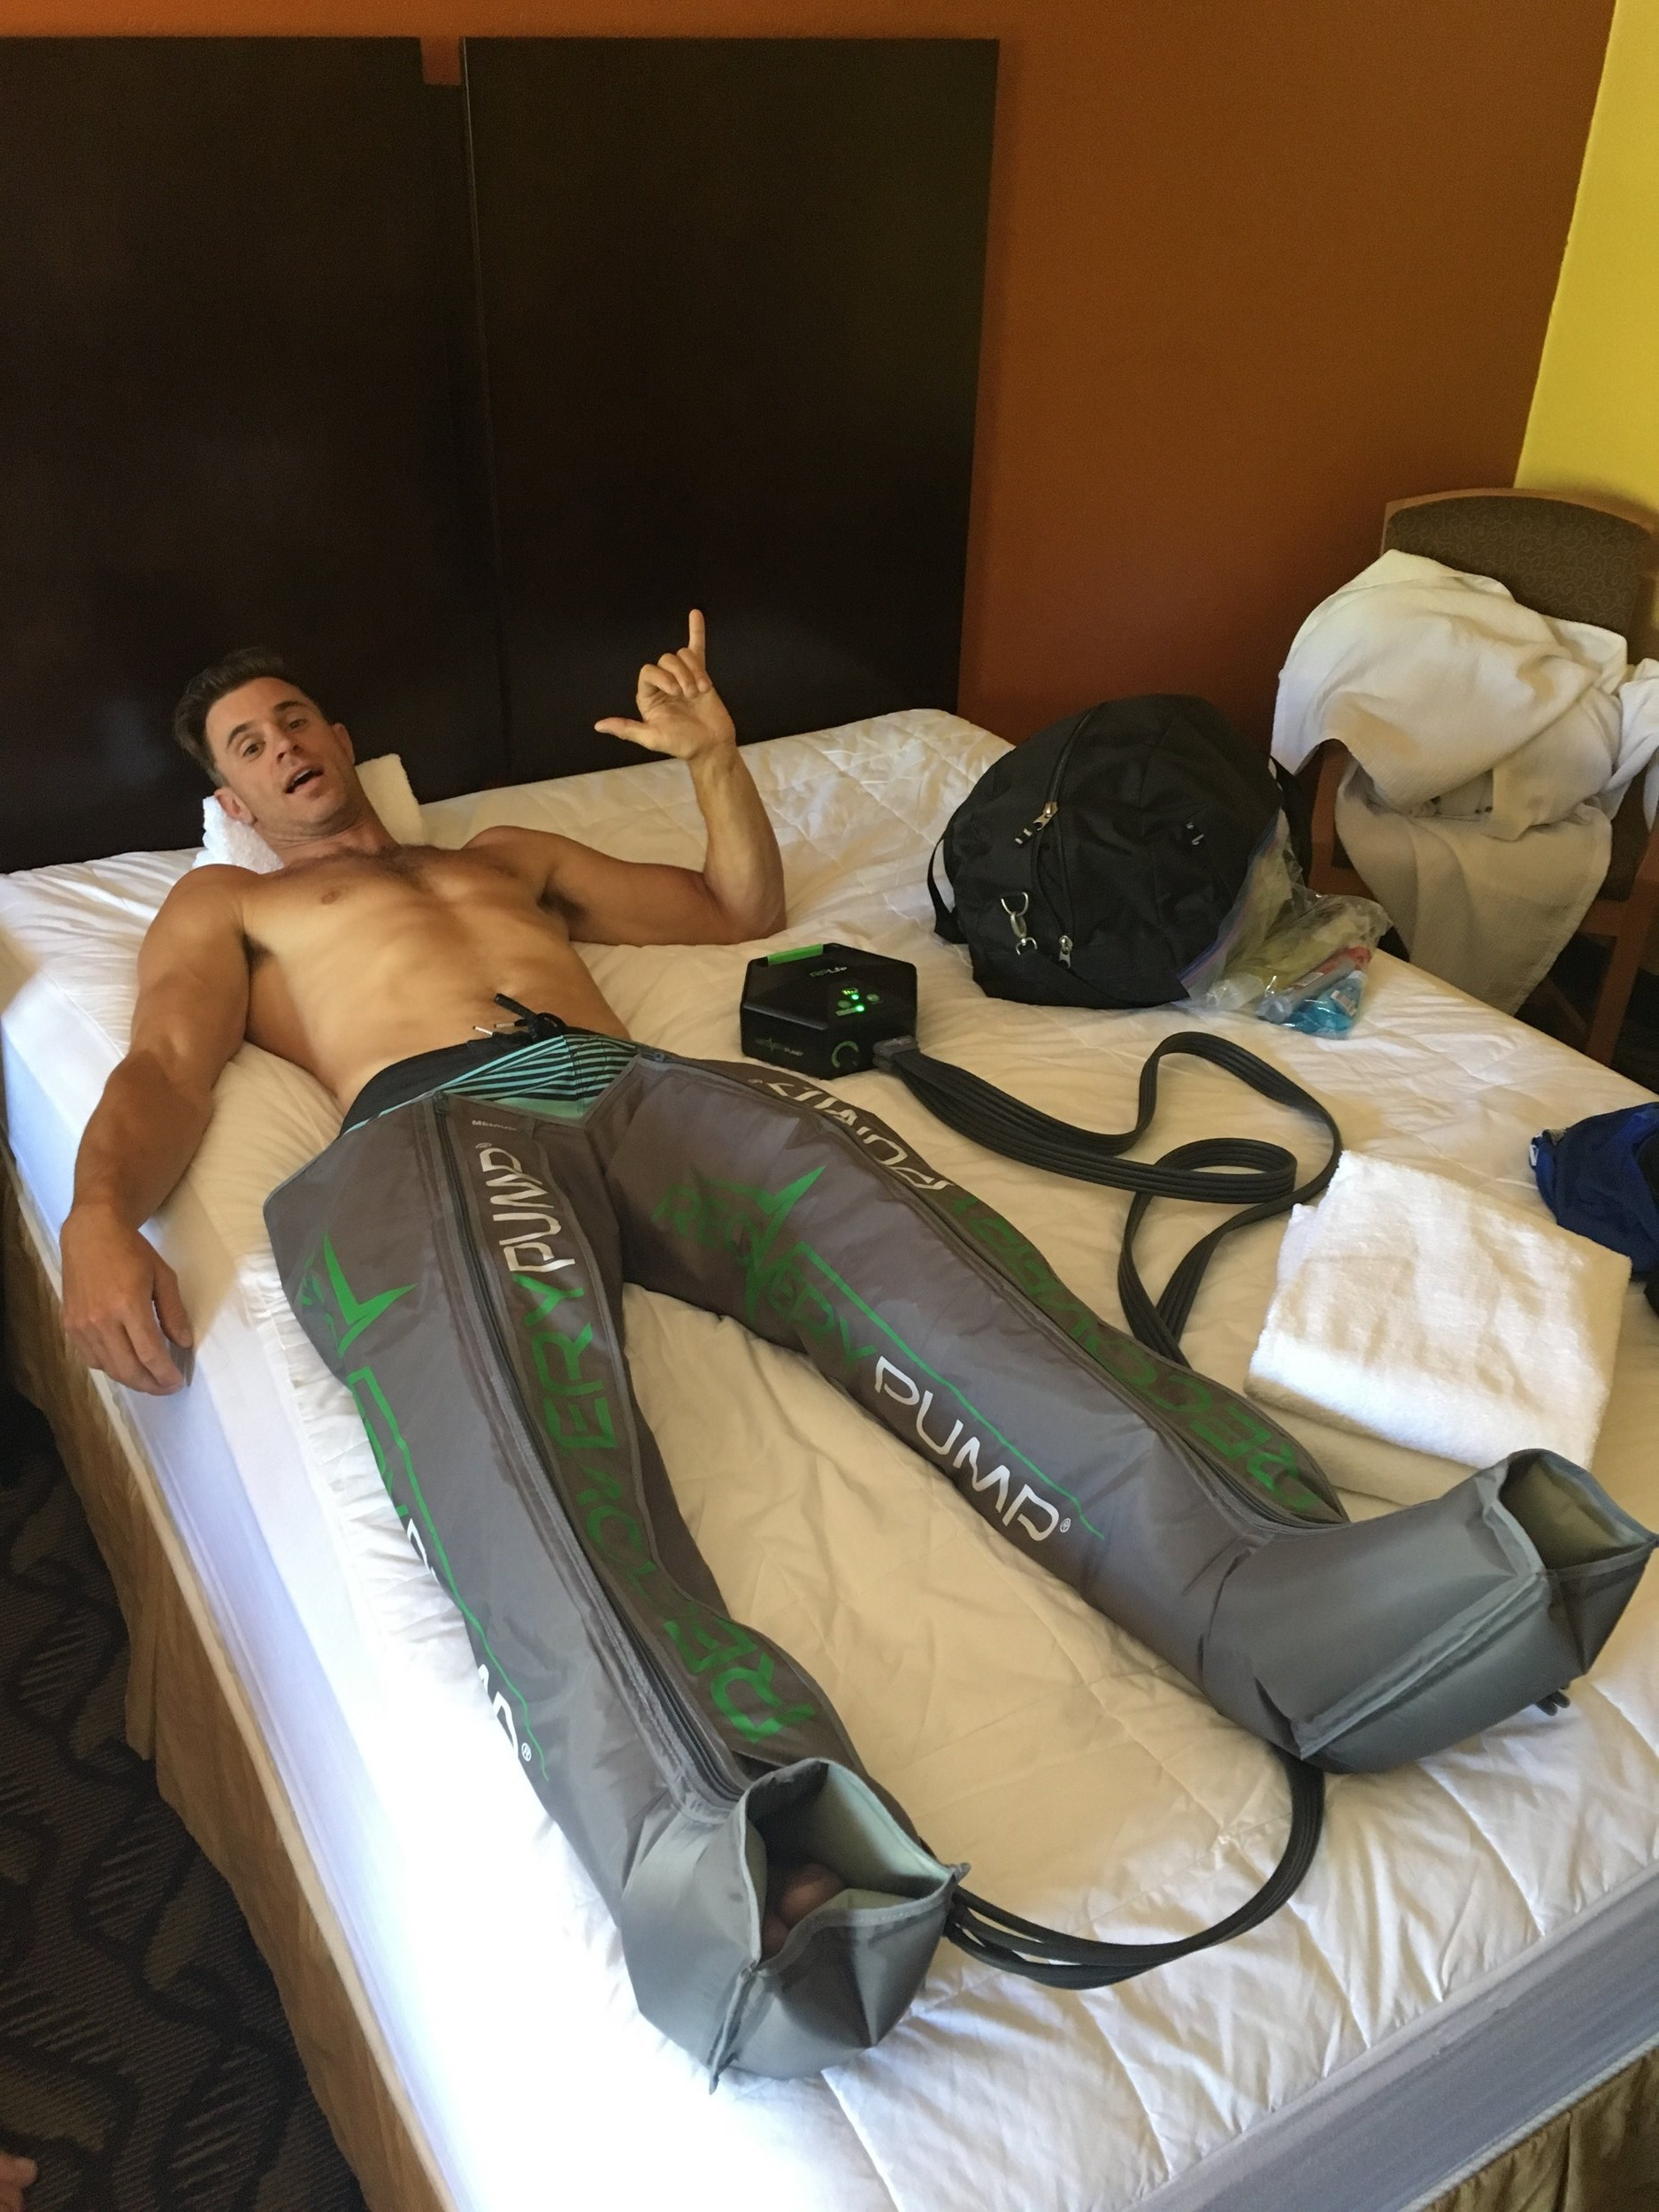 nate+koch+bed+and+recovery+boots.jpg